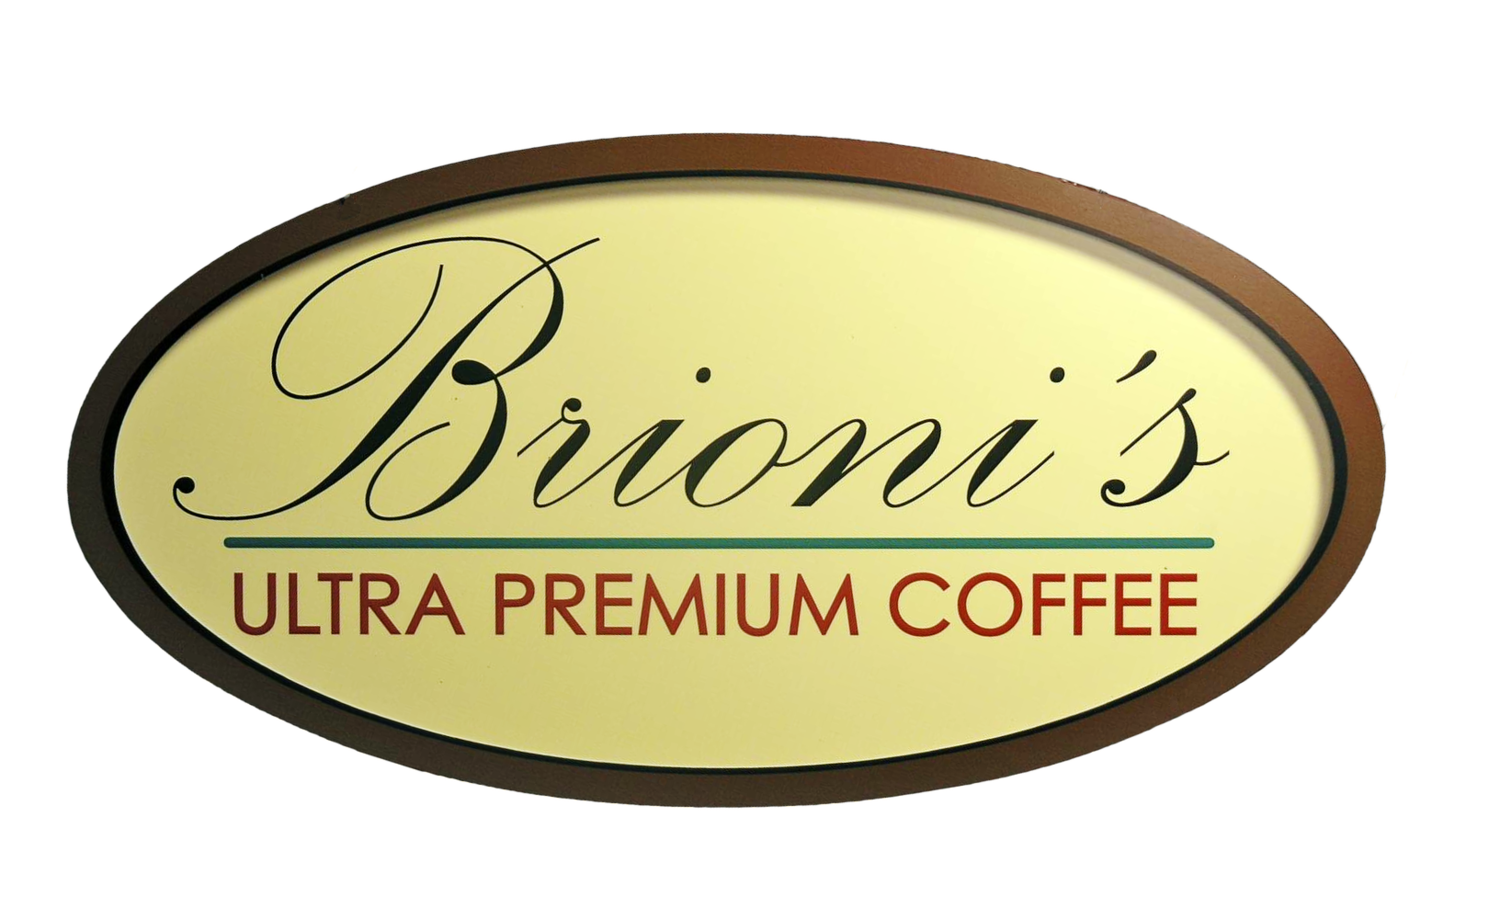 Brioni's Ultra Premium Coffee